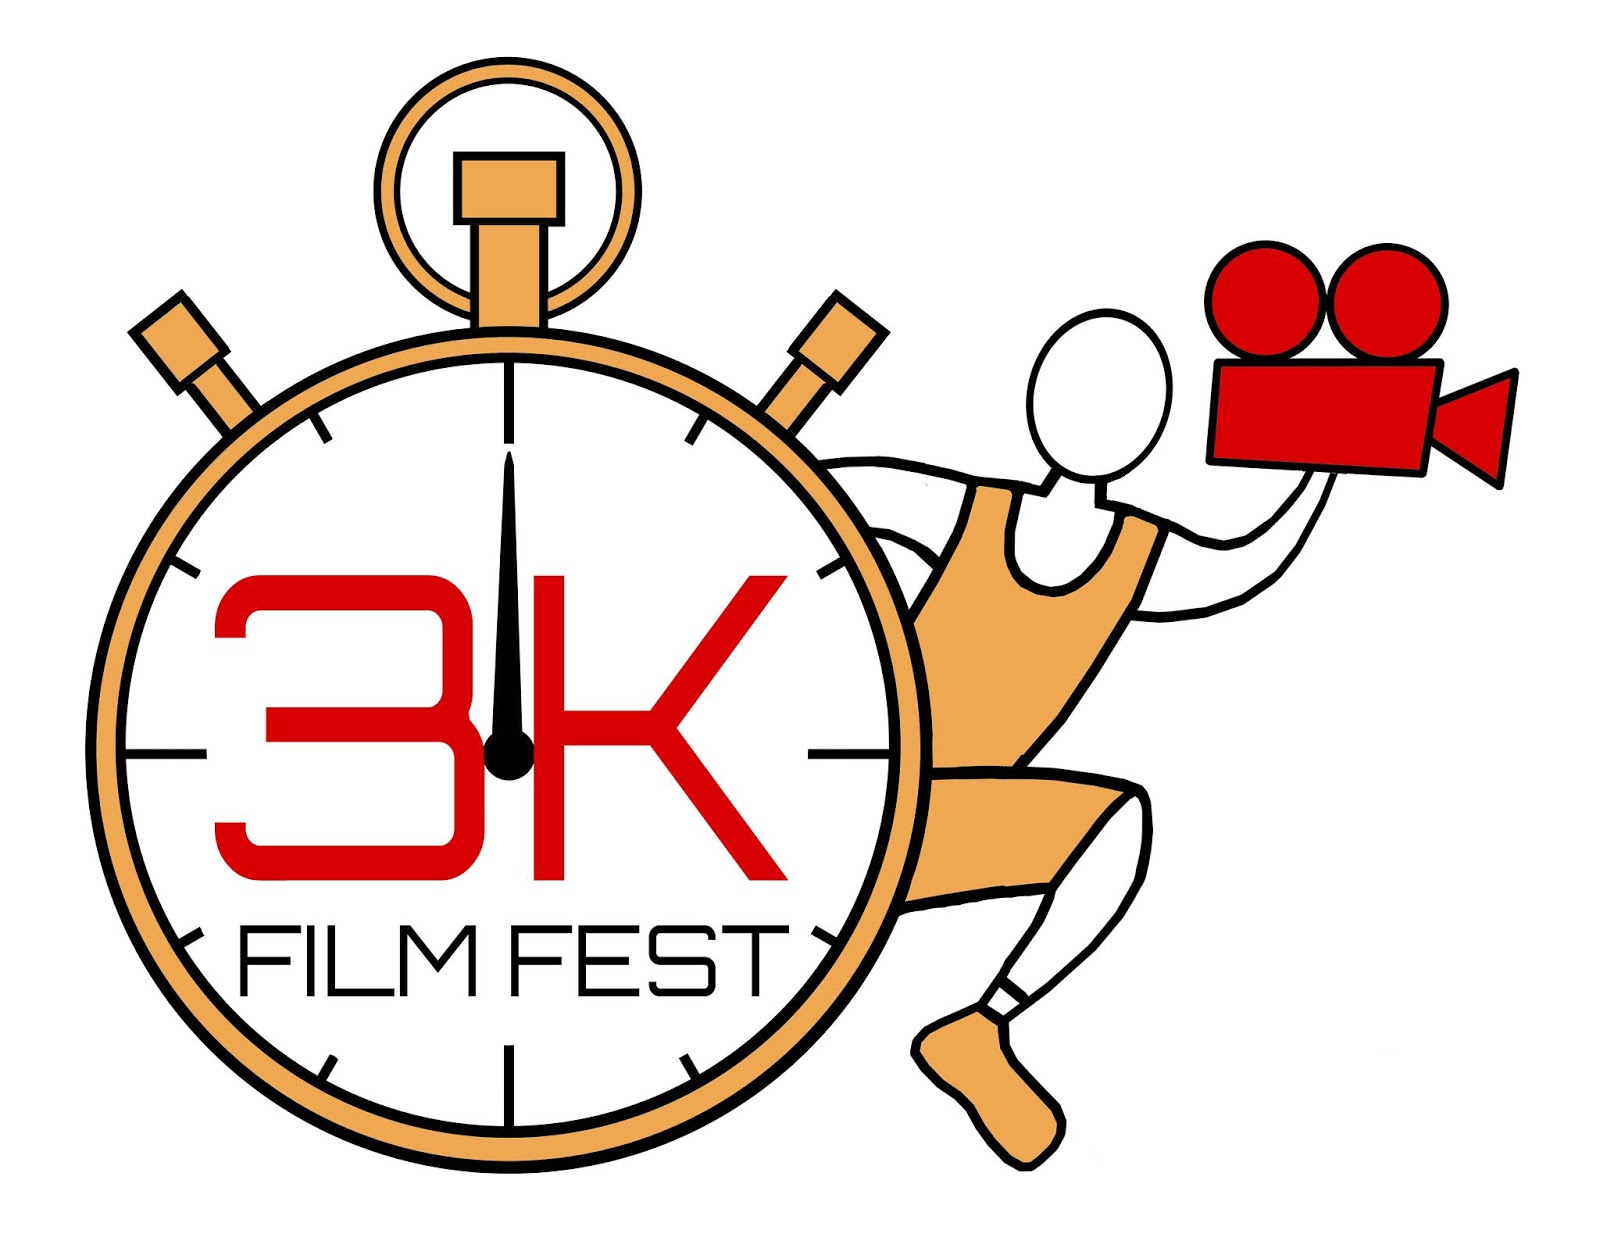 what s new with k ru 3k film festival sign up today O Do R Ou ever wanted to pete in a weekend filmmaking contest now s your chance to sign up for our 3k film festival in november